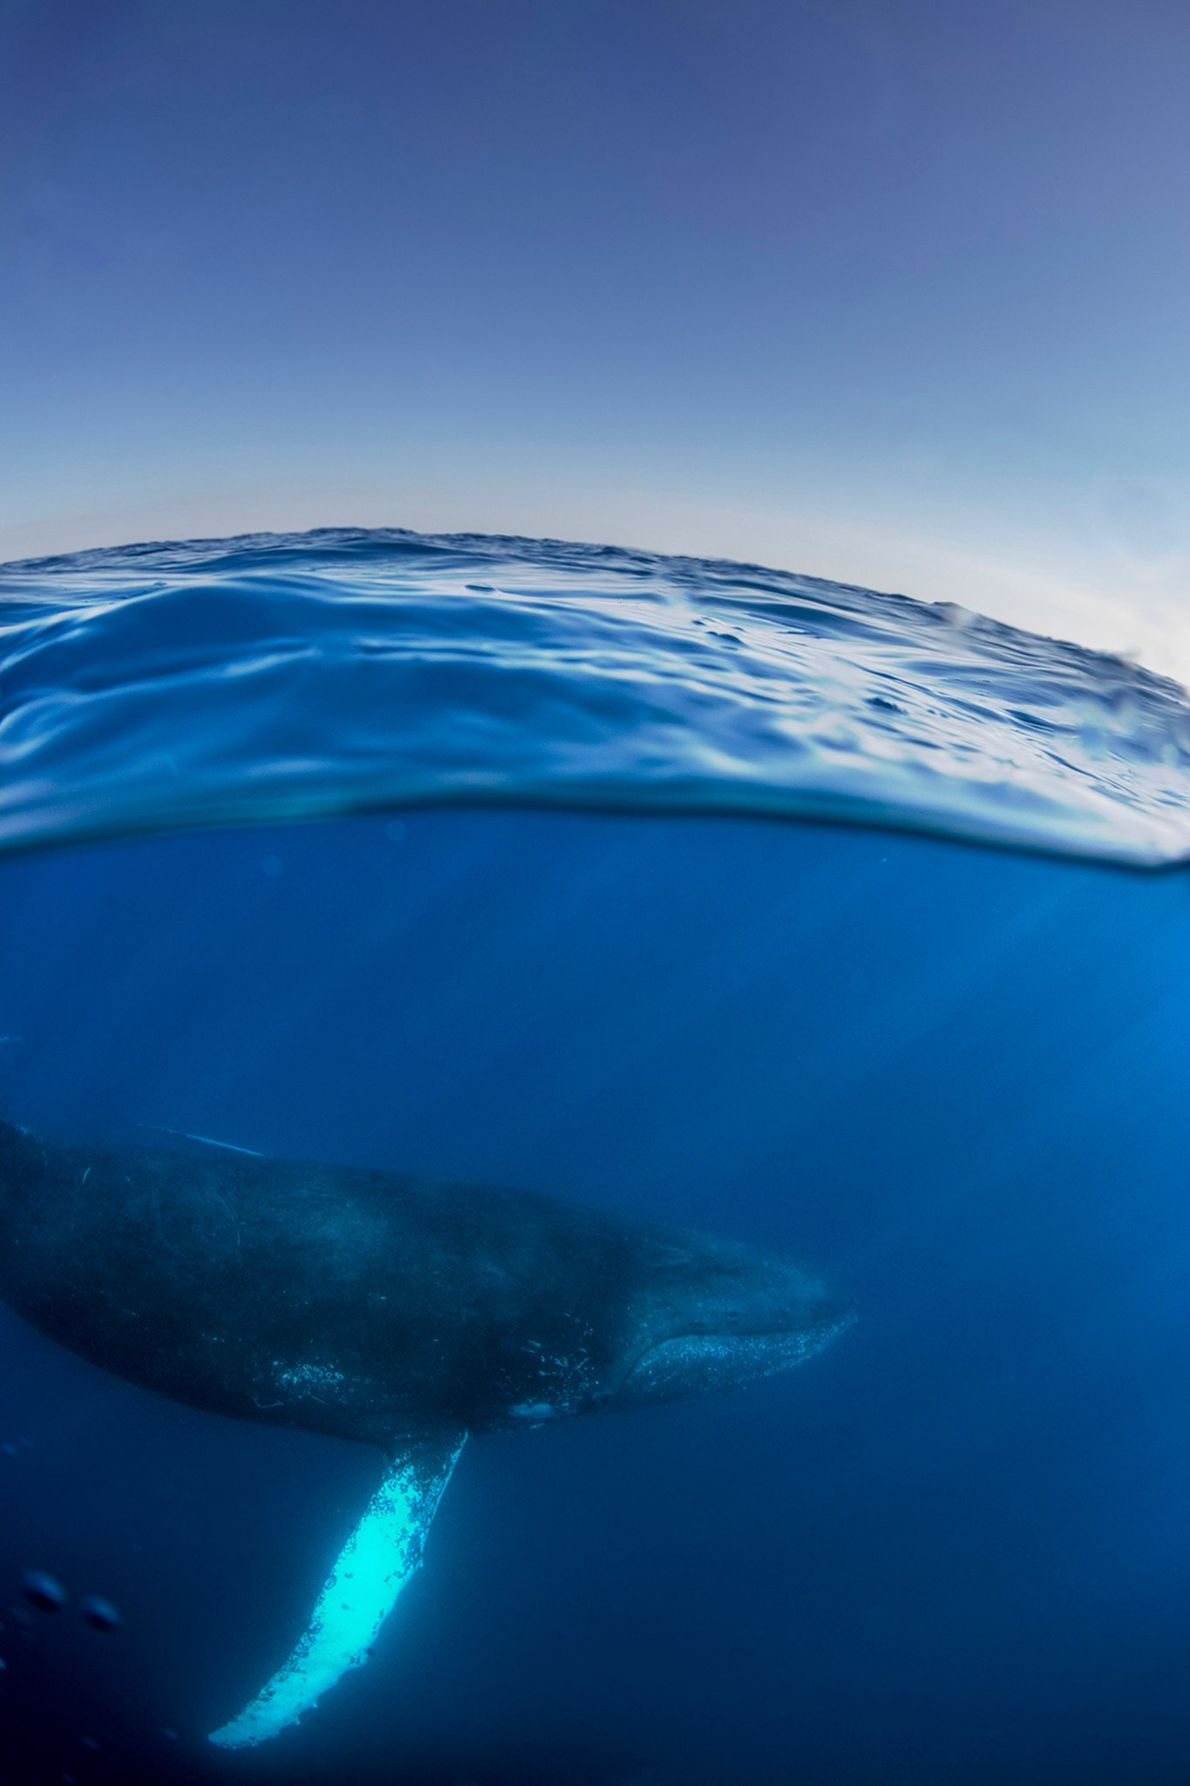 More recently, Smart has begun to focus on underwater photography, including photographing this humpback whale in ...